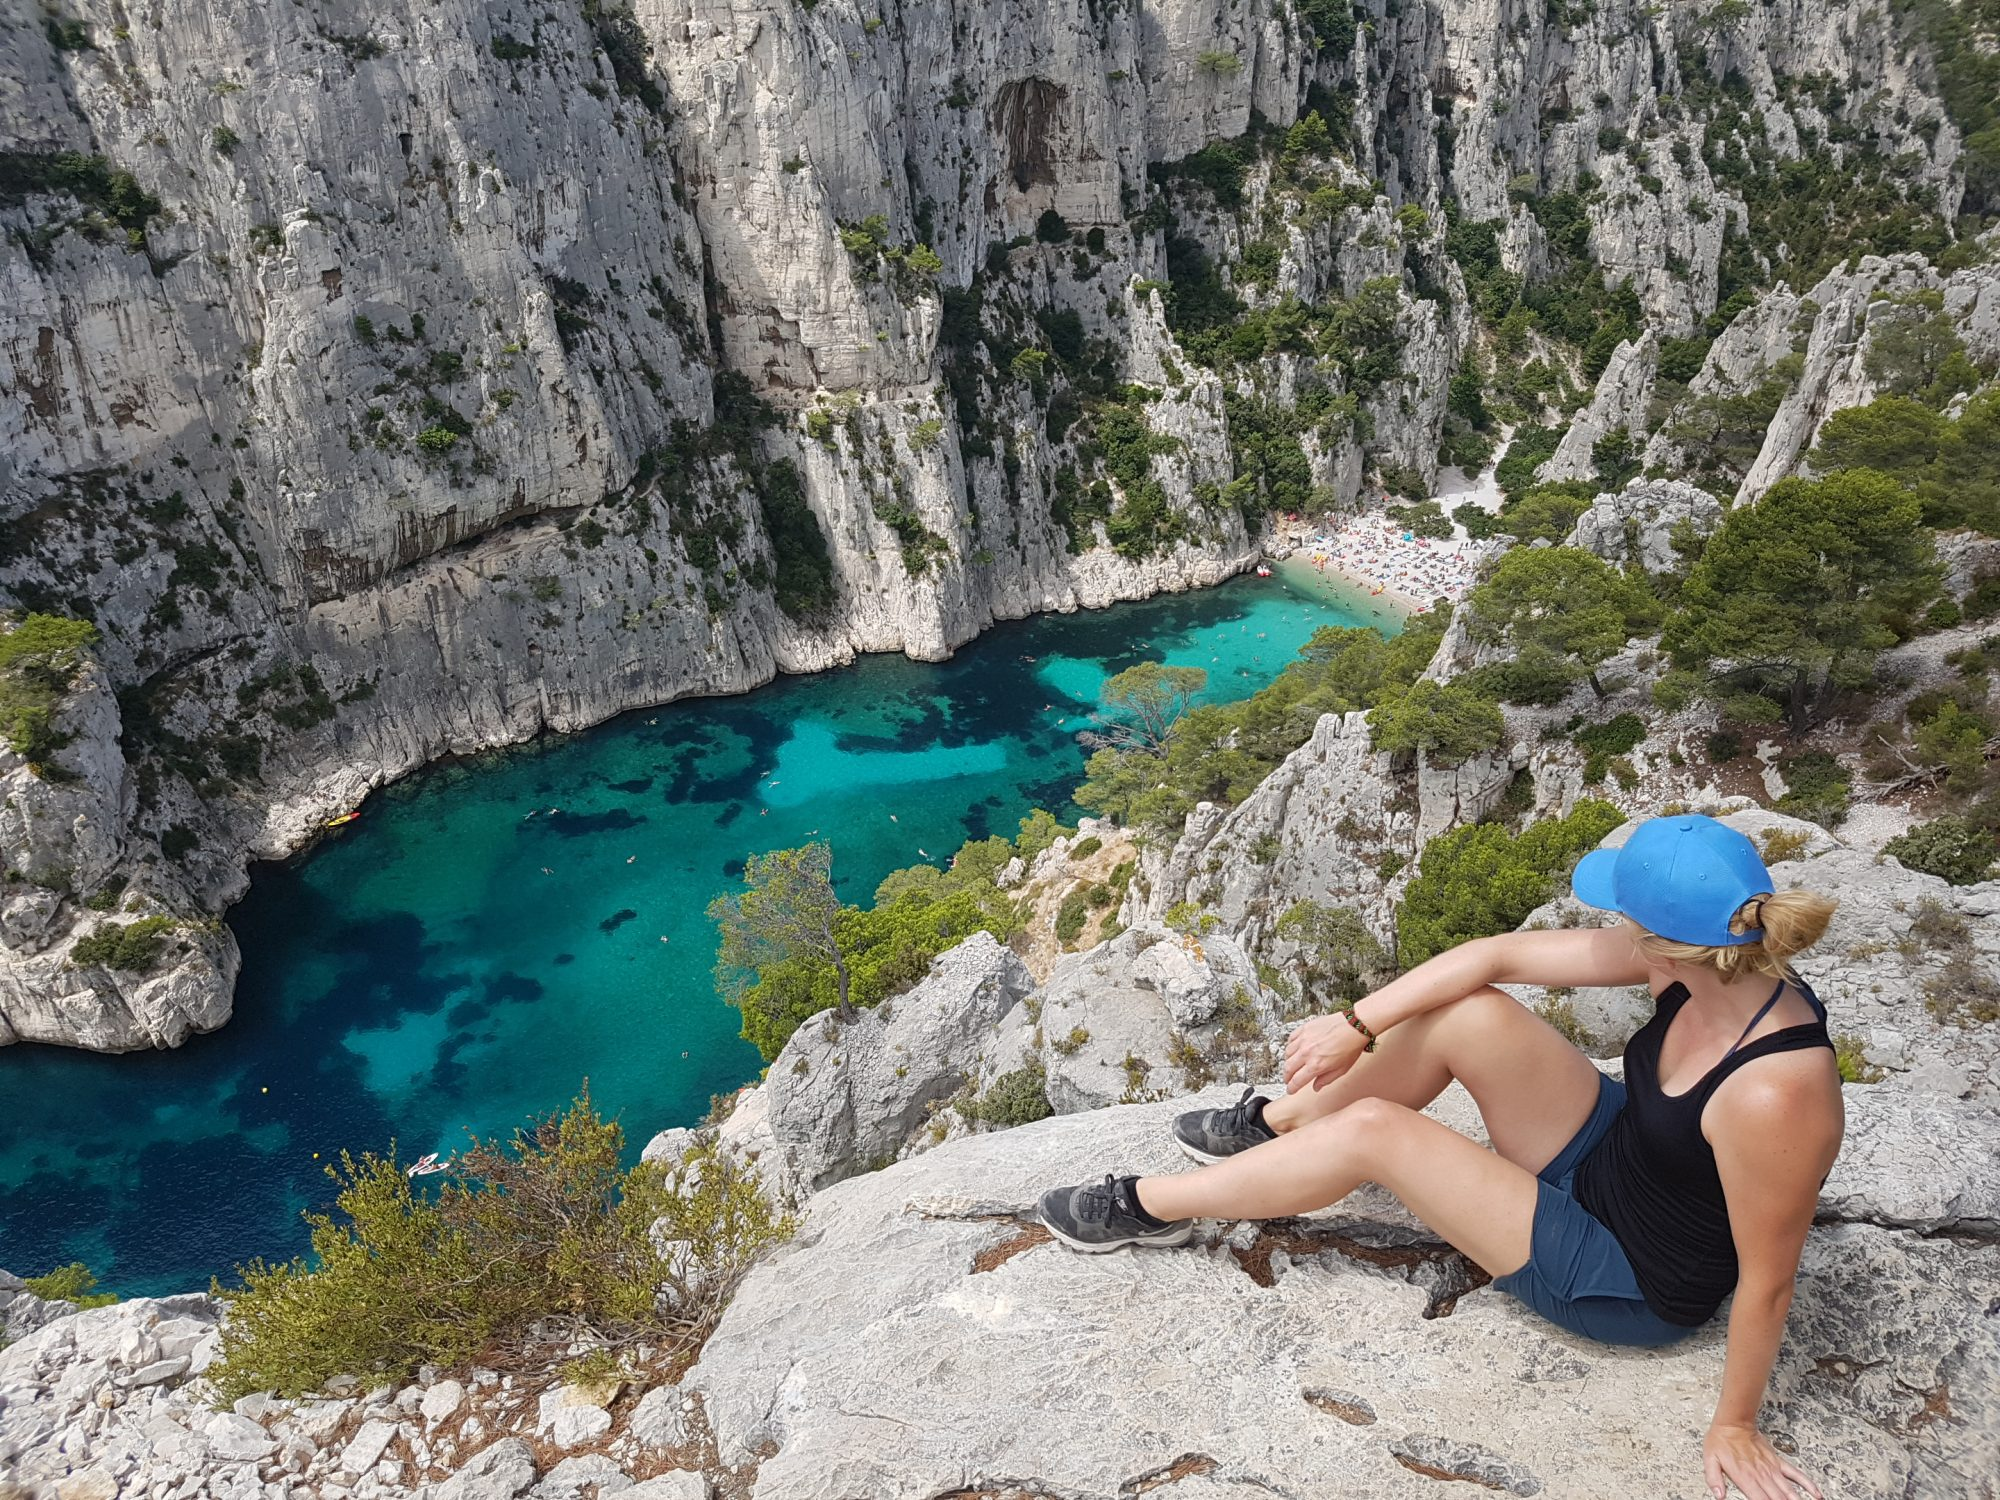 Hiking in the Calanques near Cassis and Marseille – A Stunning Piece of France